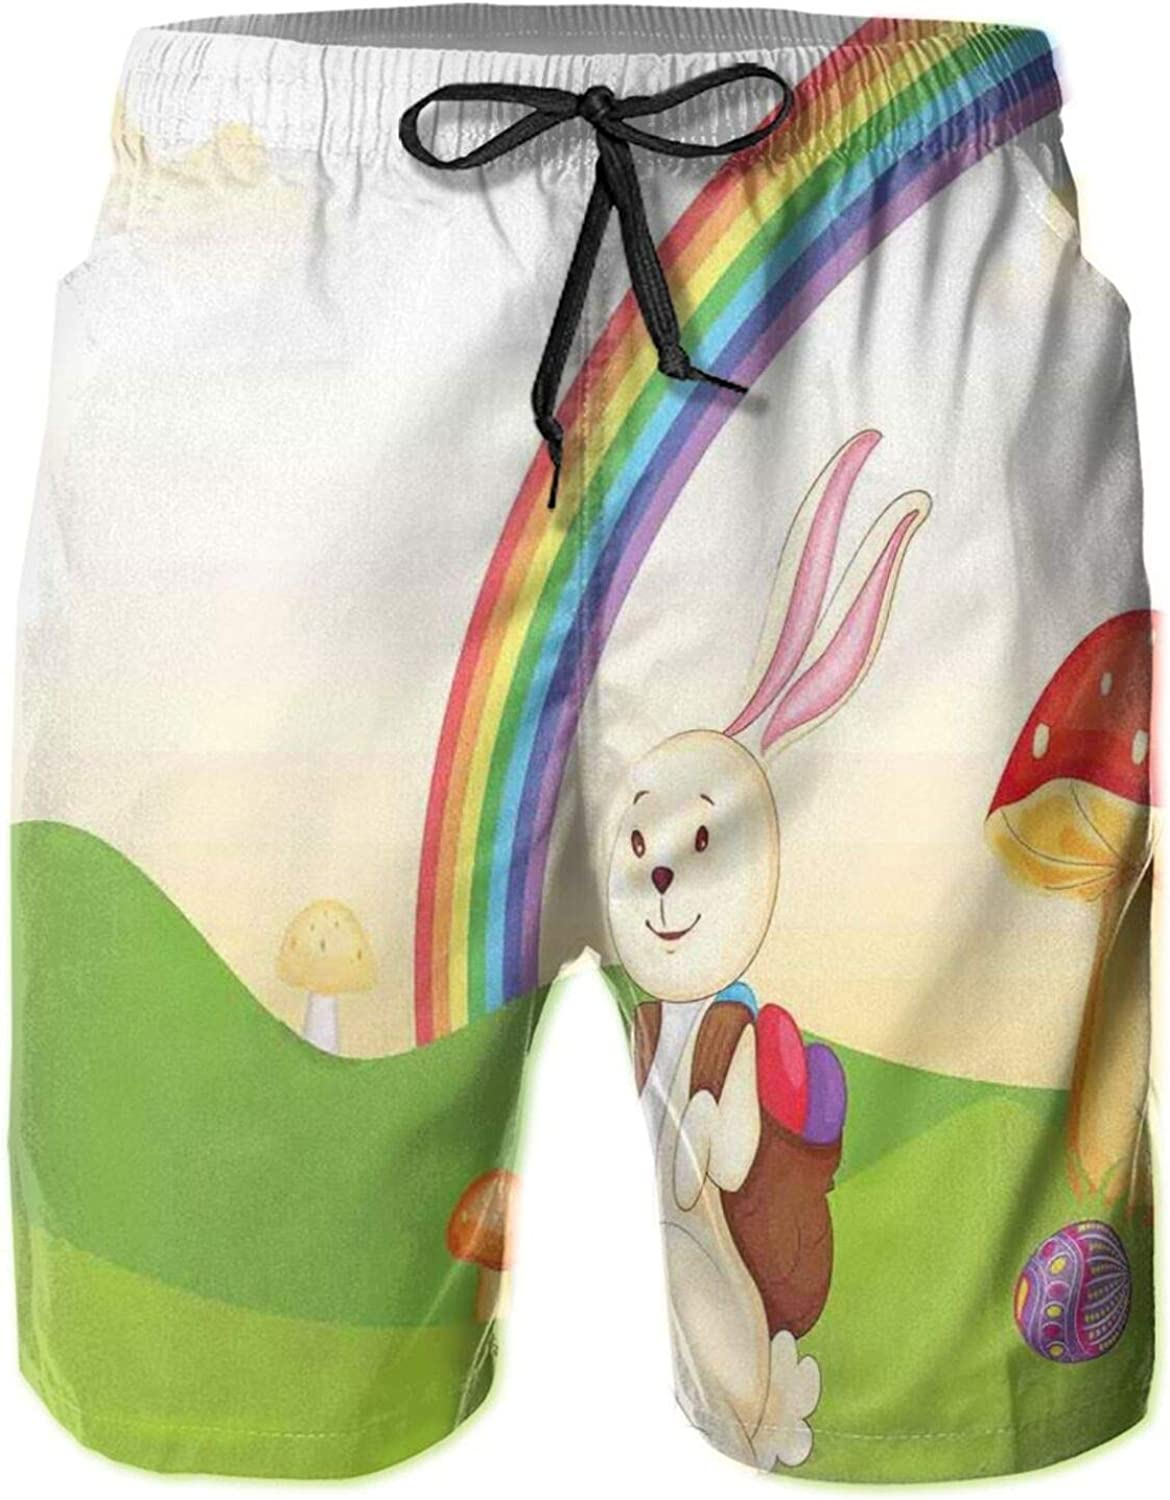 Bunny with Easter Egg Under The Rainbow Happy Rabbit in The Nature Kids Theme Fun Design Drawstring Waist Beach Shorts for Men Swim Trucks Board Shorts with Mesh Lining,L